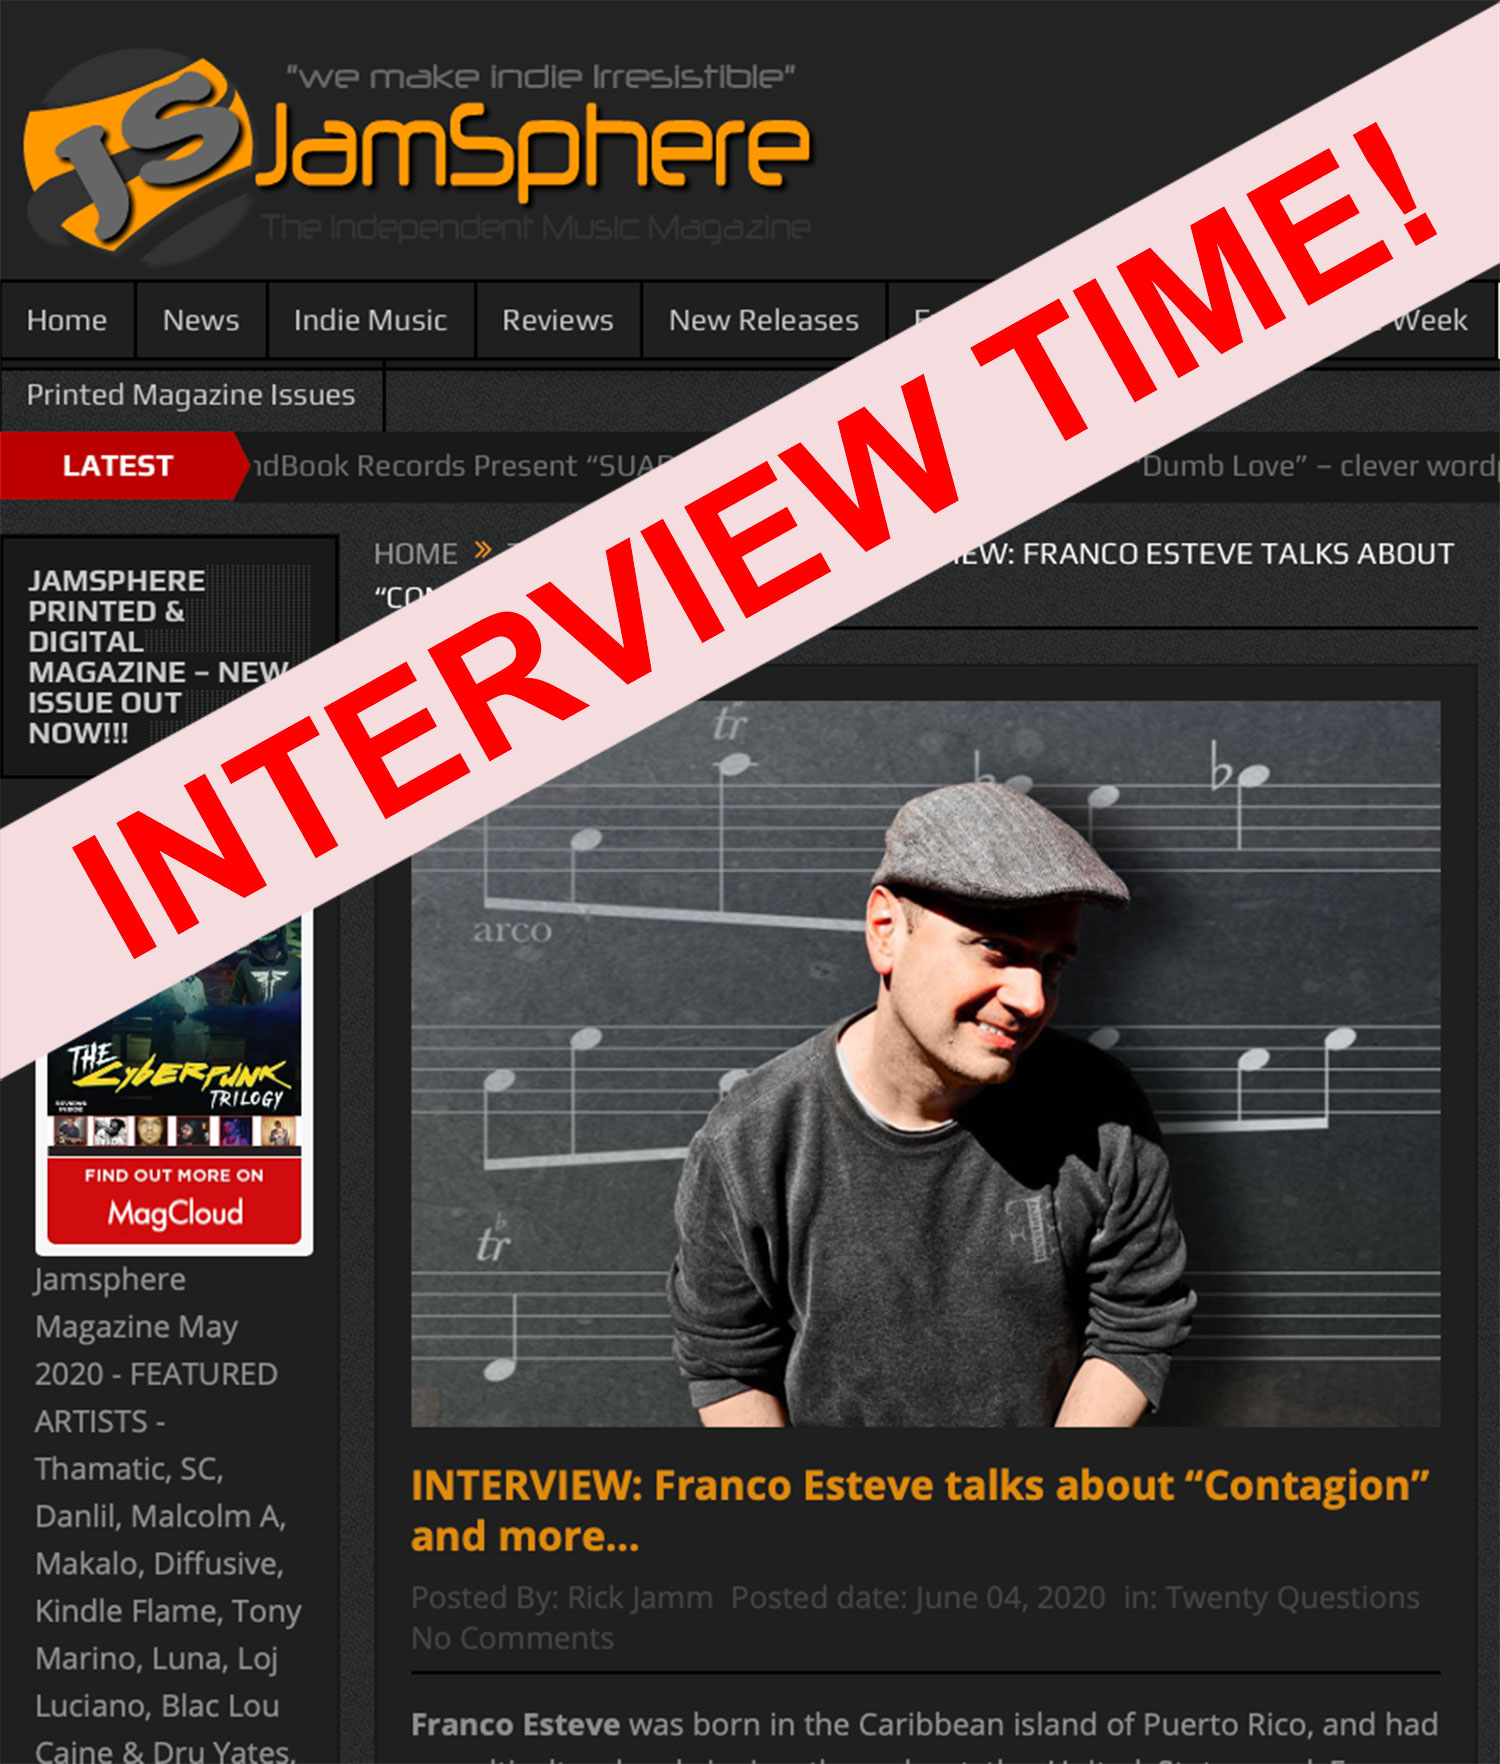 Interview Time Check Out My Contagion Interview On Jamsphere Franco Esteve